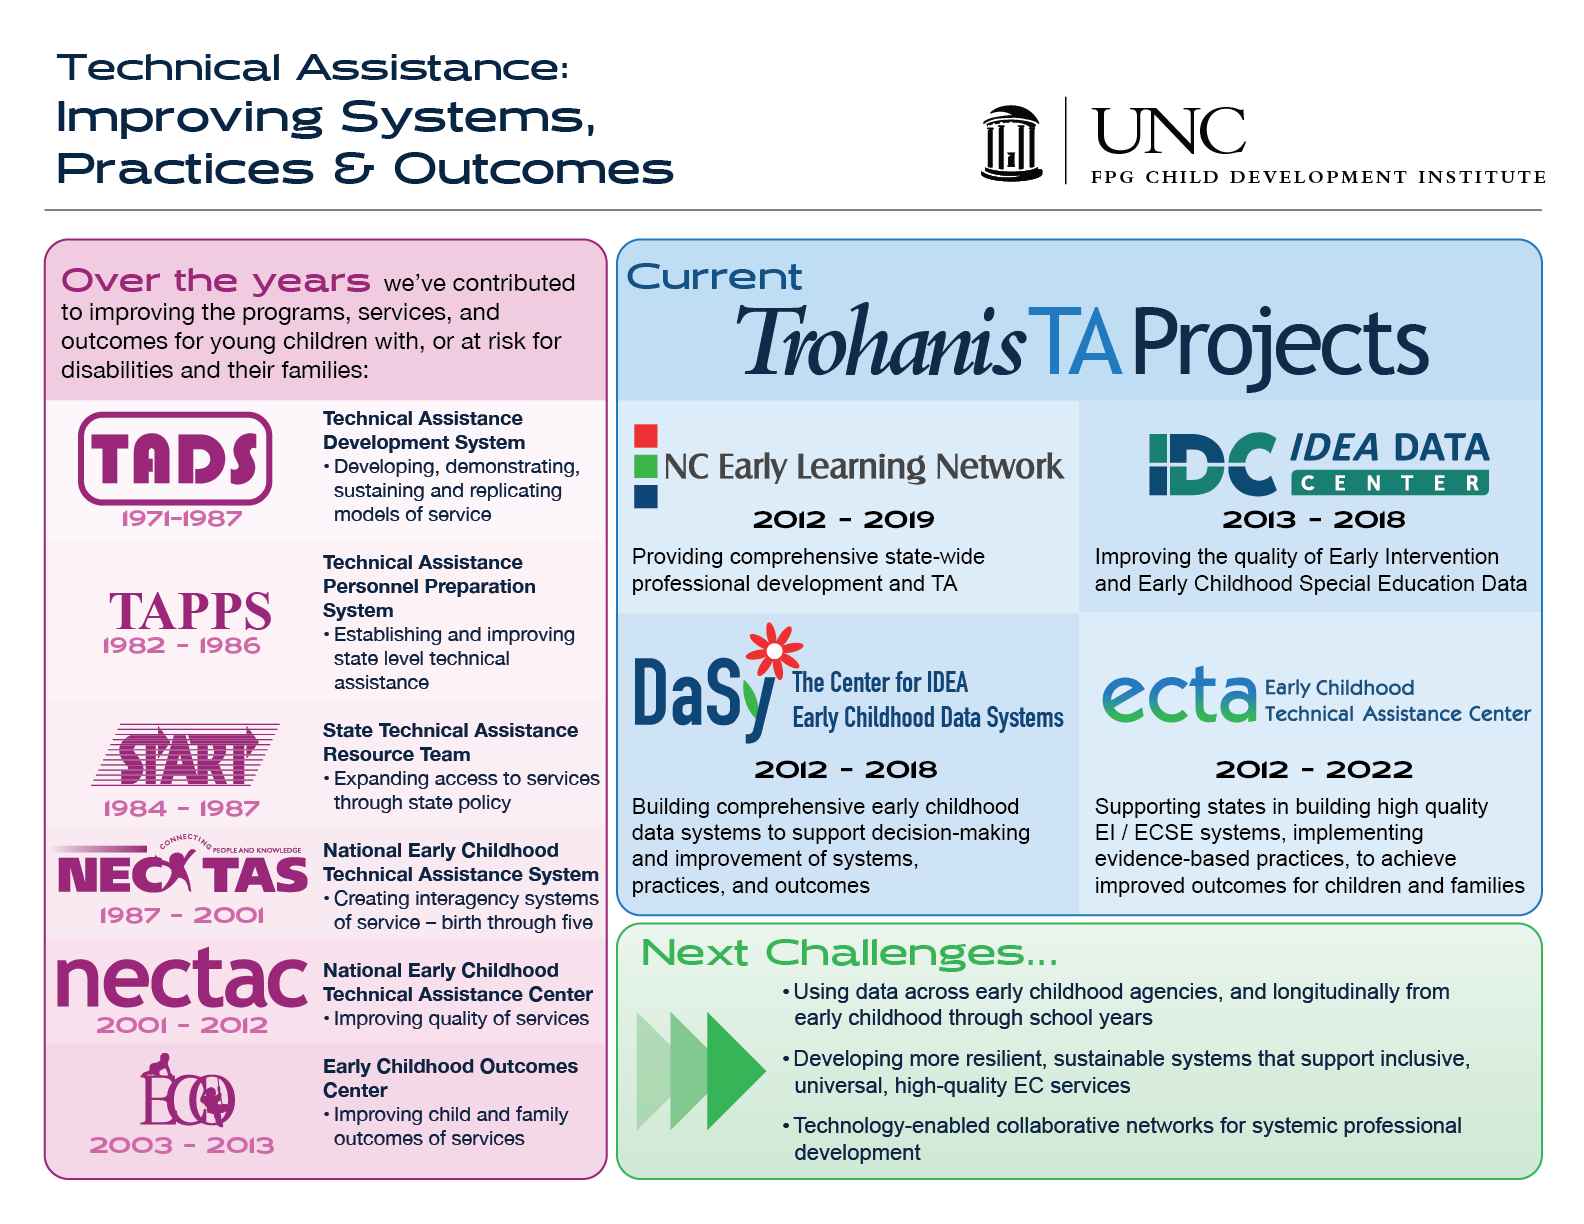 Trohanis TA Projects Overview Poster